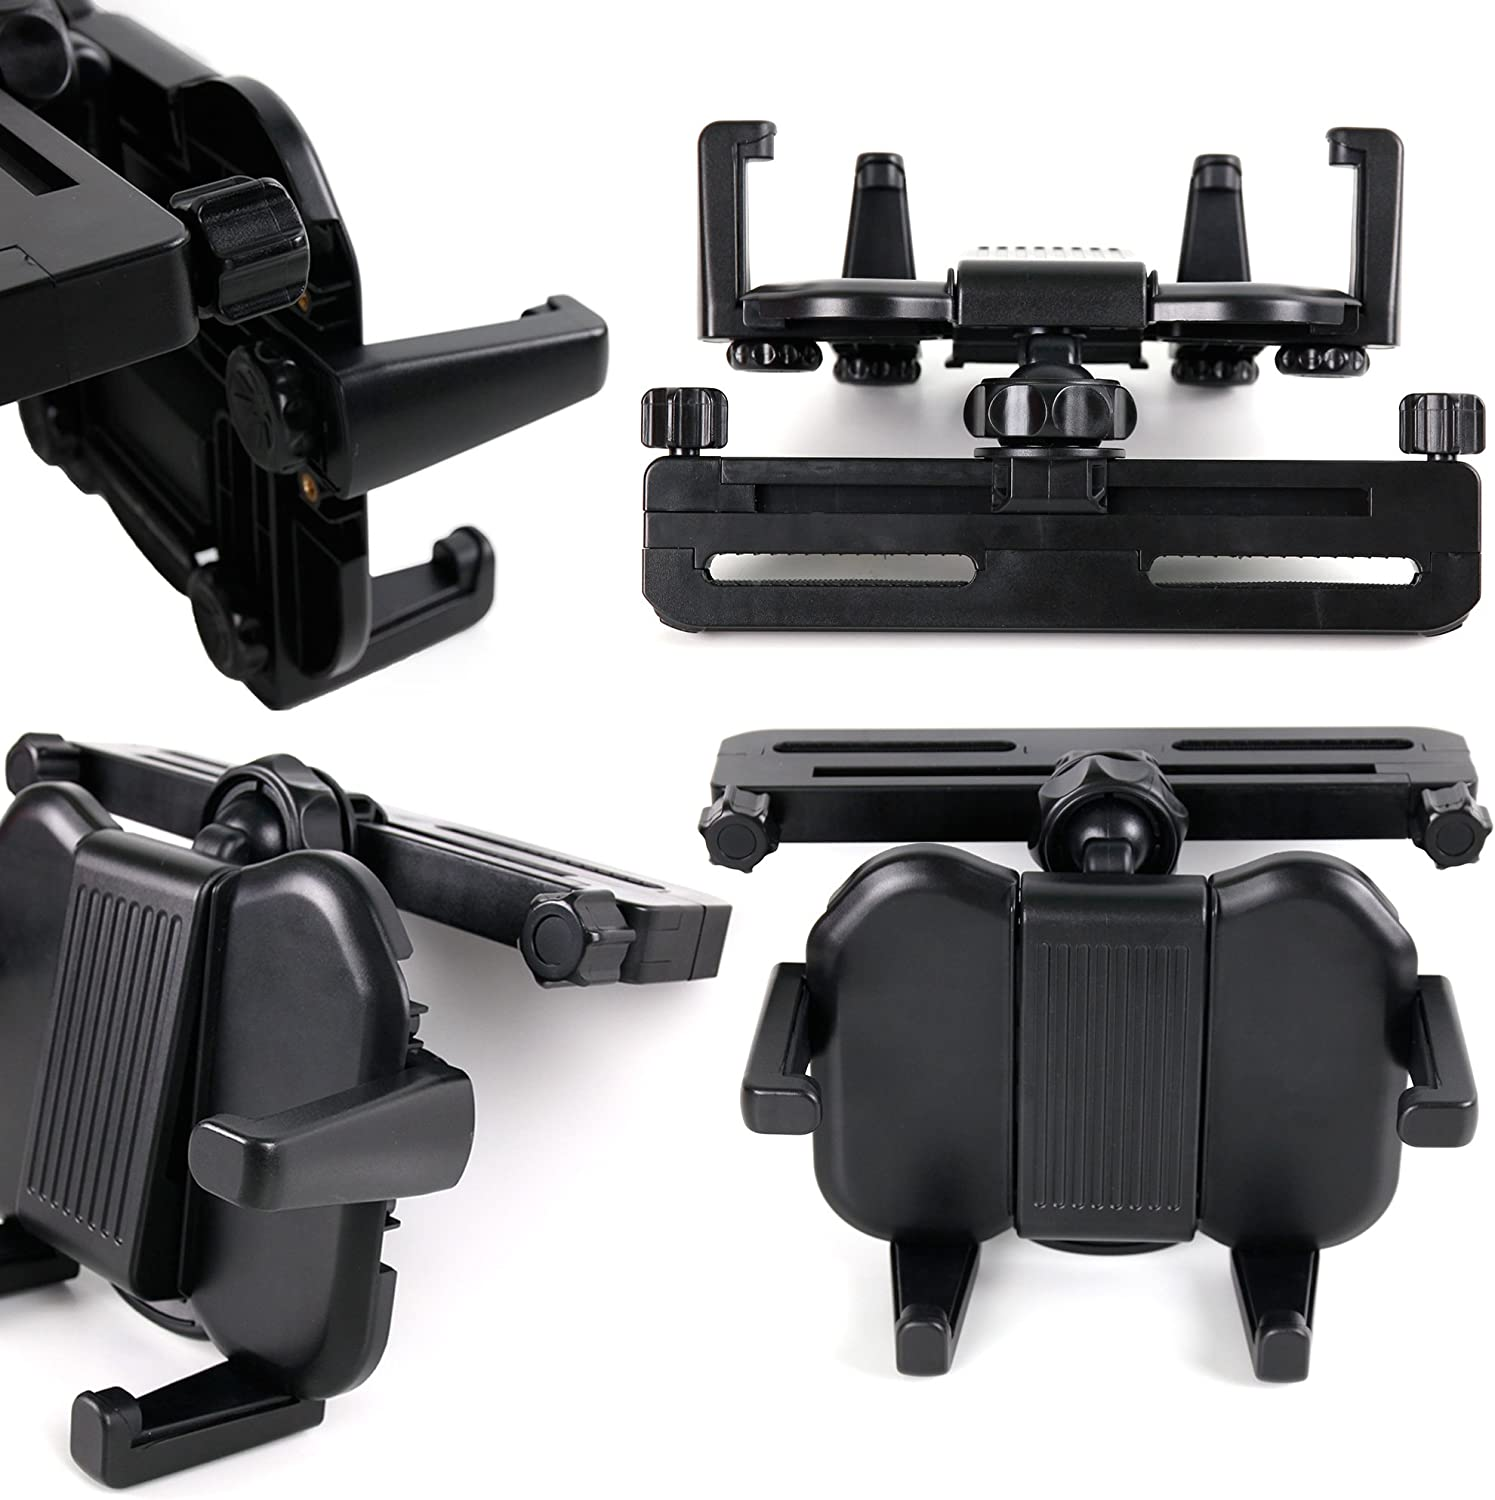 DURAGADGET in-Car Headrest Mount w/Adjustable Arms - Suitable for Use with Acer Iconia Tab A700 | Iconia W700 & Elonex ETouch Tablet